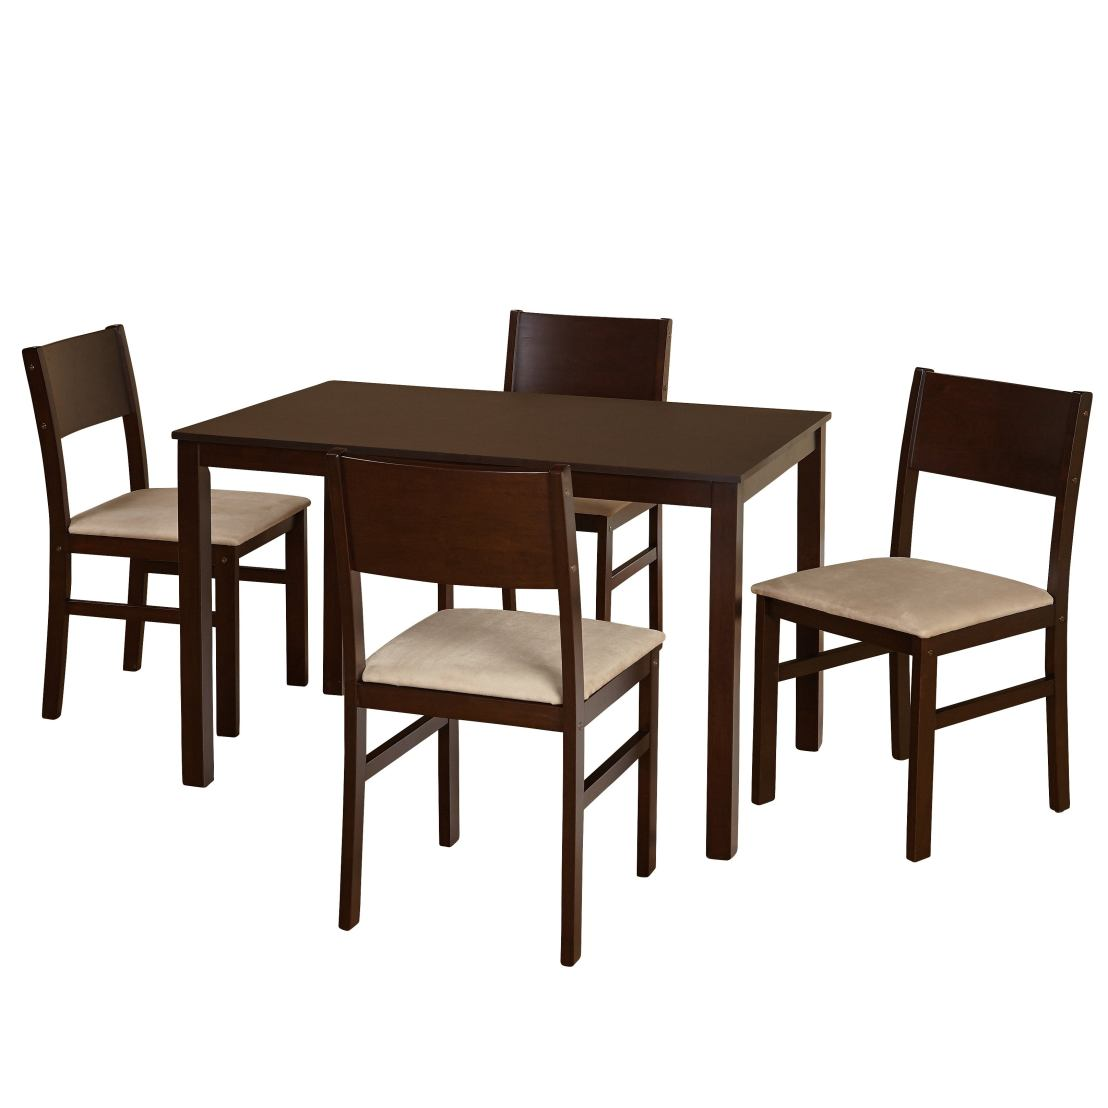 Simple-Living-Templeton-5-Piece-Dining-Set-734ef09c-464d-4b59-8f2b-7a7f4a68cf82.jpg